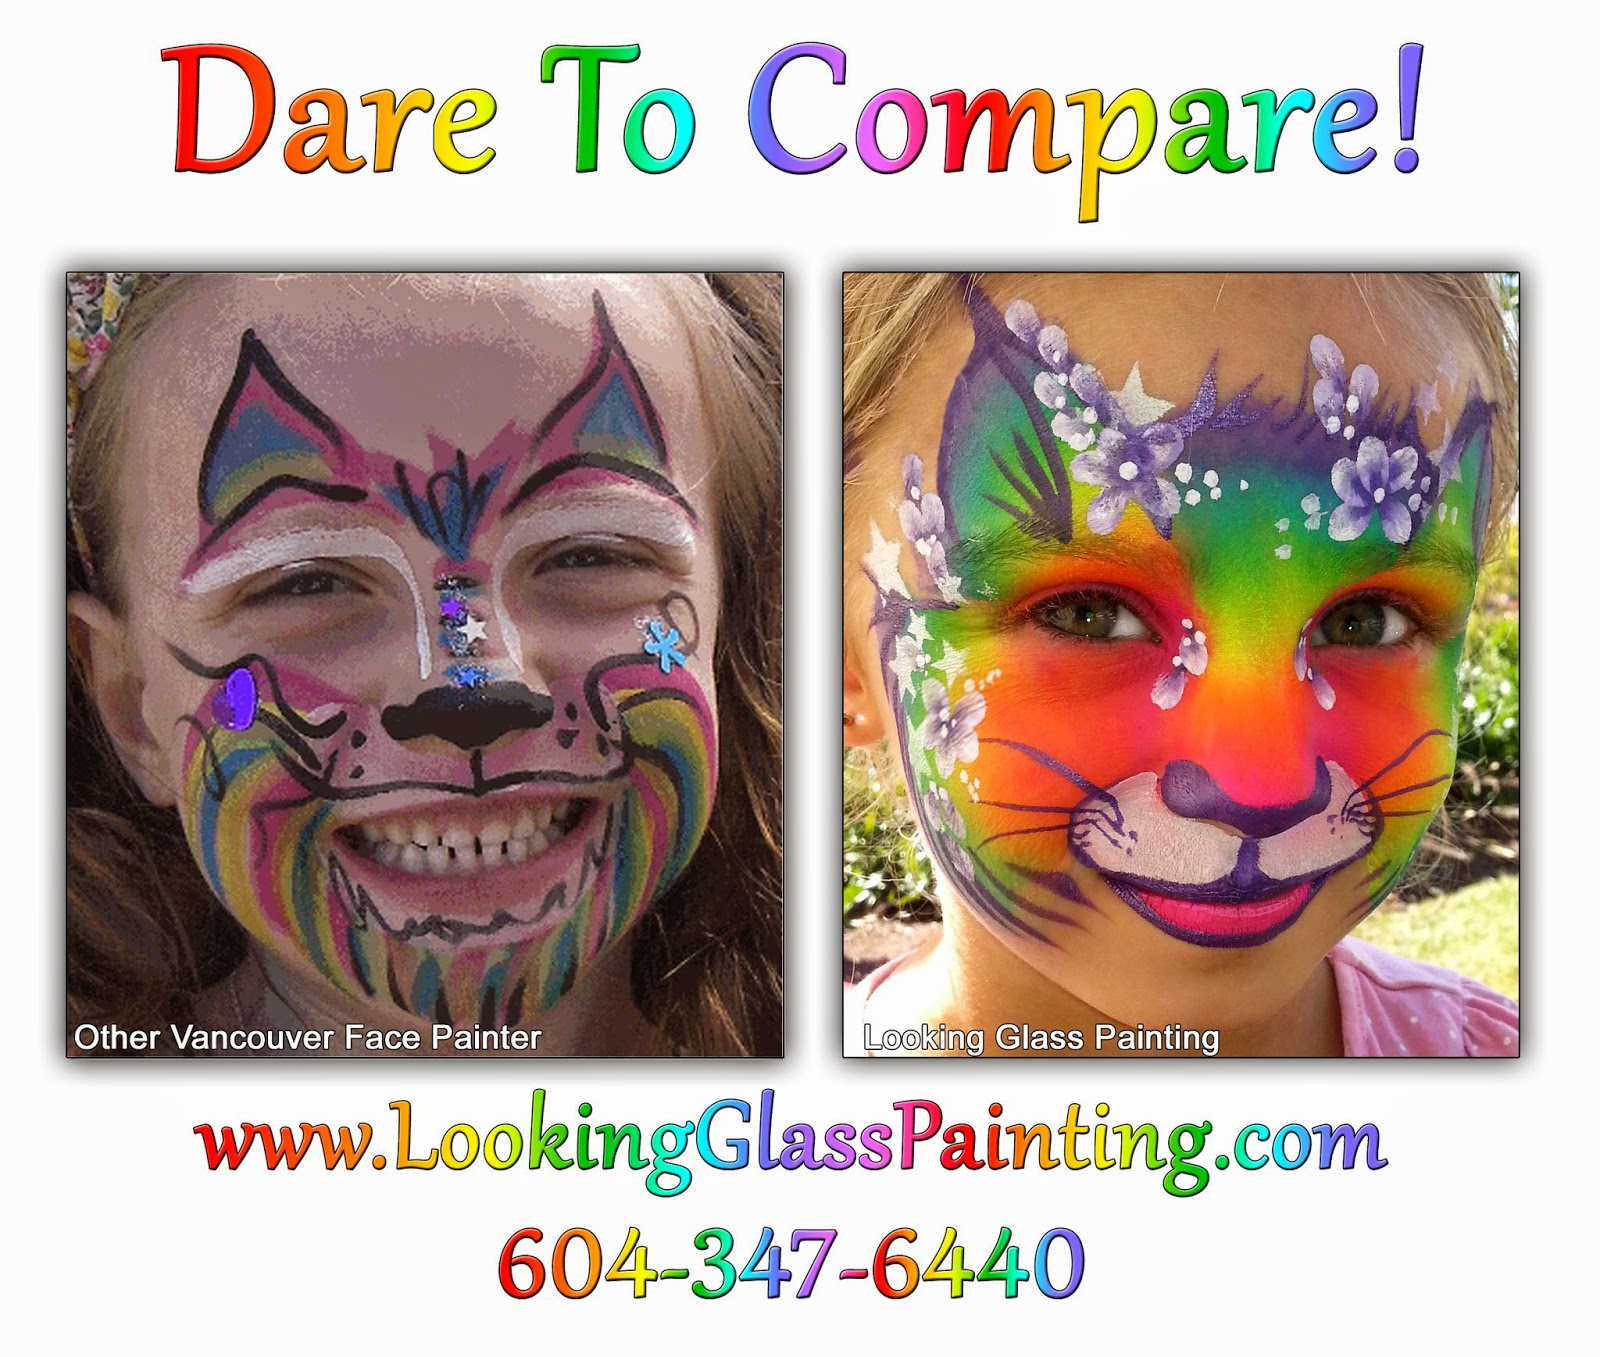 """Face painting is """"Annoying and Ugly"""" Compare"""